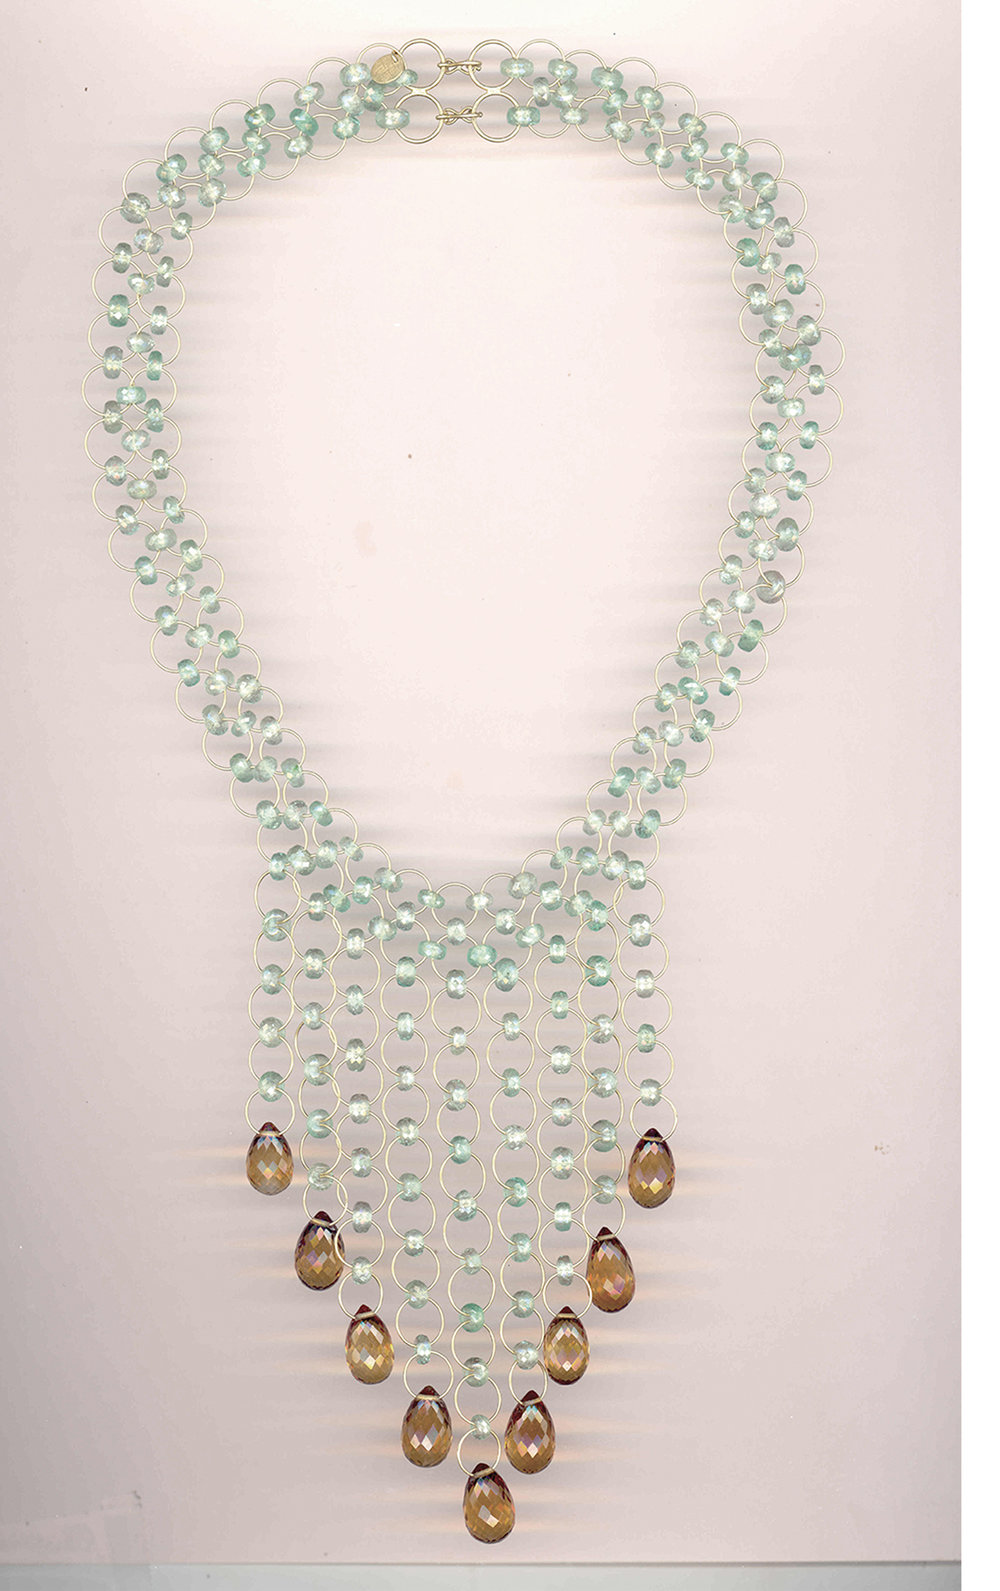 BEFORE IMAGE   Direction: Silhouette the necklace.